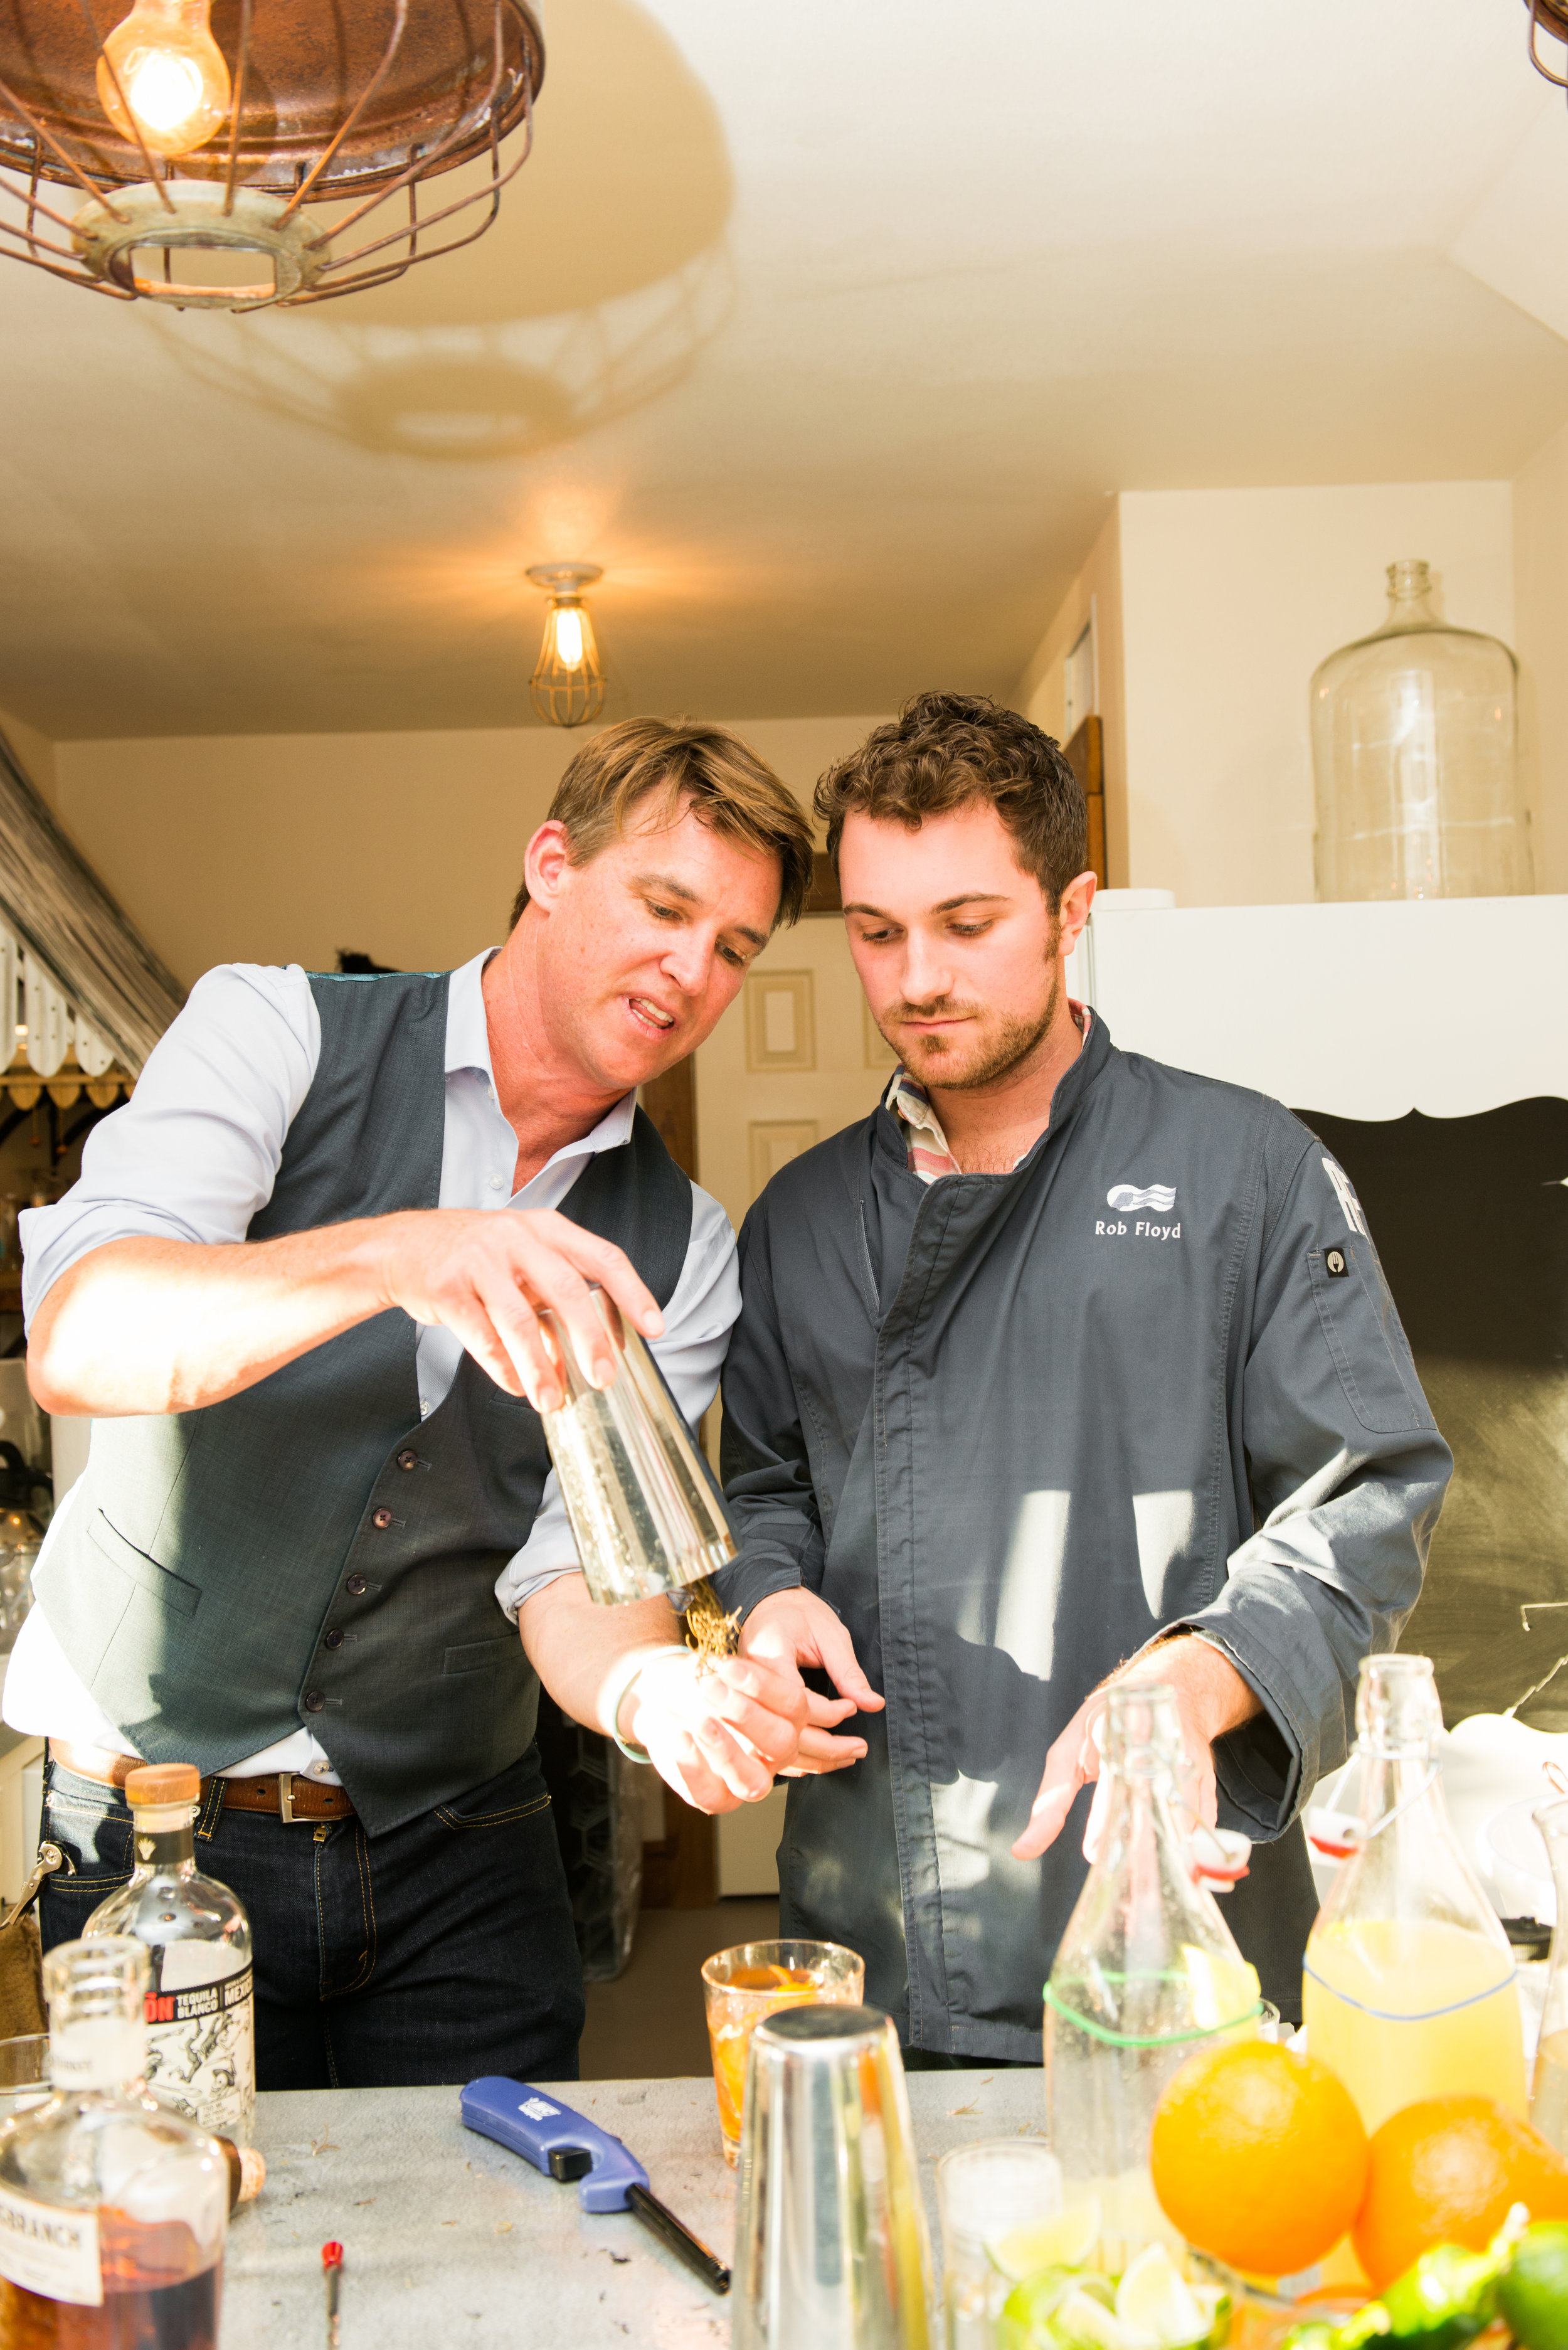 Rob Floyd and Shay Spence make a Smoking Gun cocktail at The Vintage Round Top x Women of Today welcome dinner.